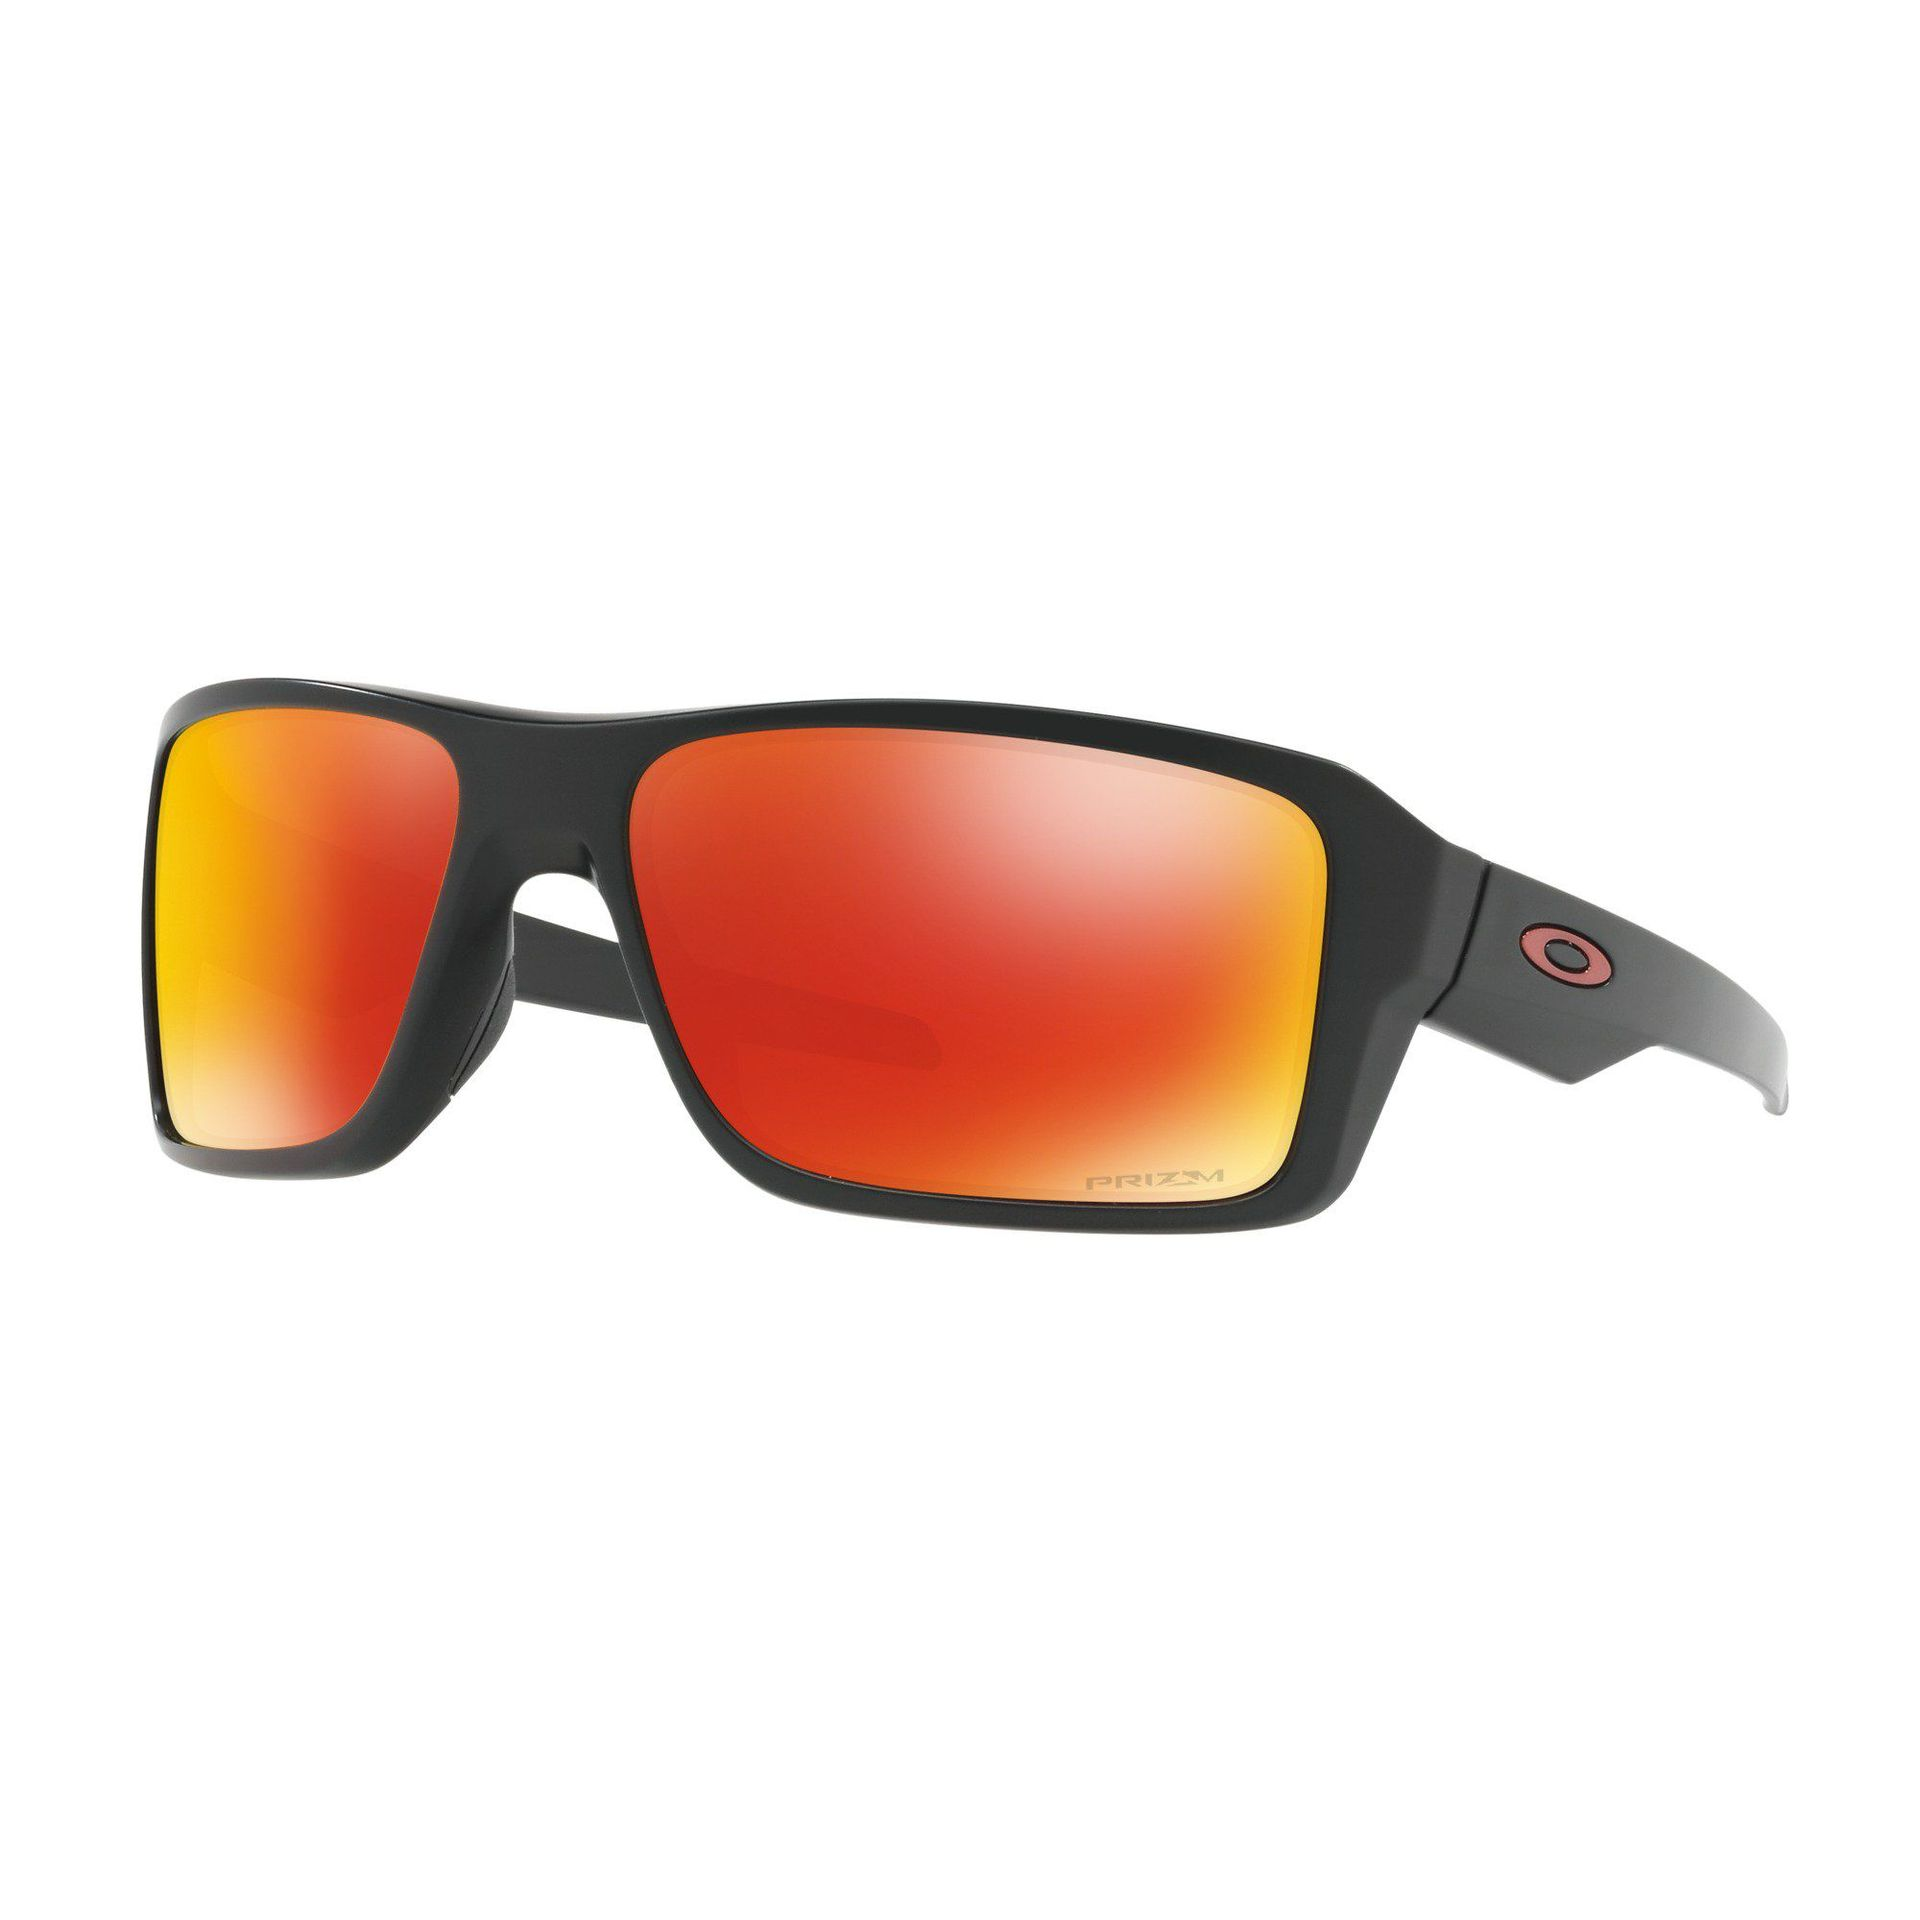 OKULARY OAKLEY DOUBLE EDGE MATTE BLACK|PRIZM RUBY POLARIZED